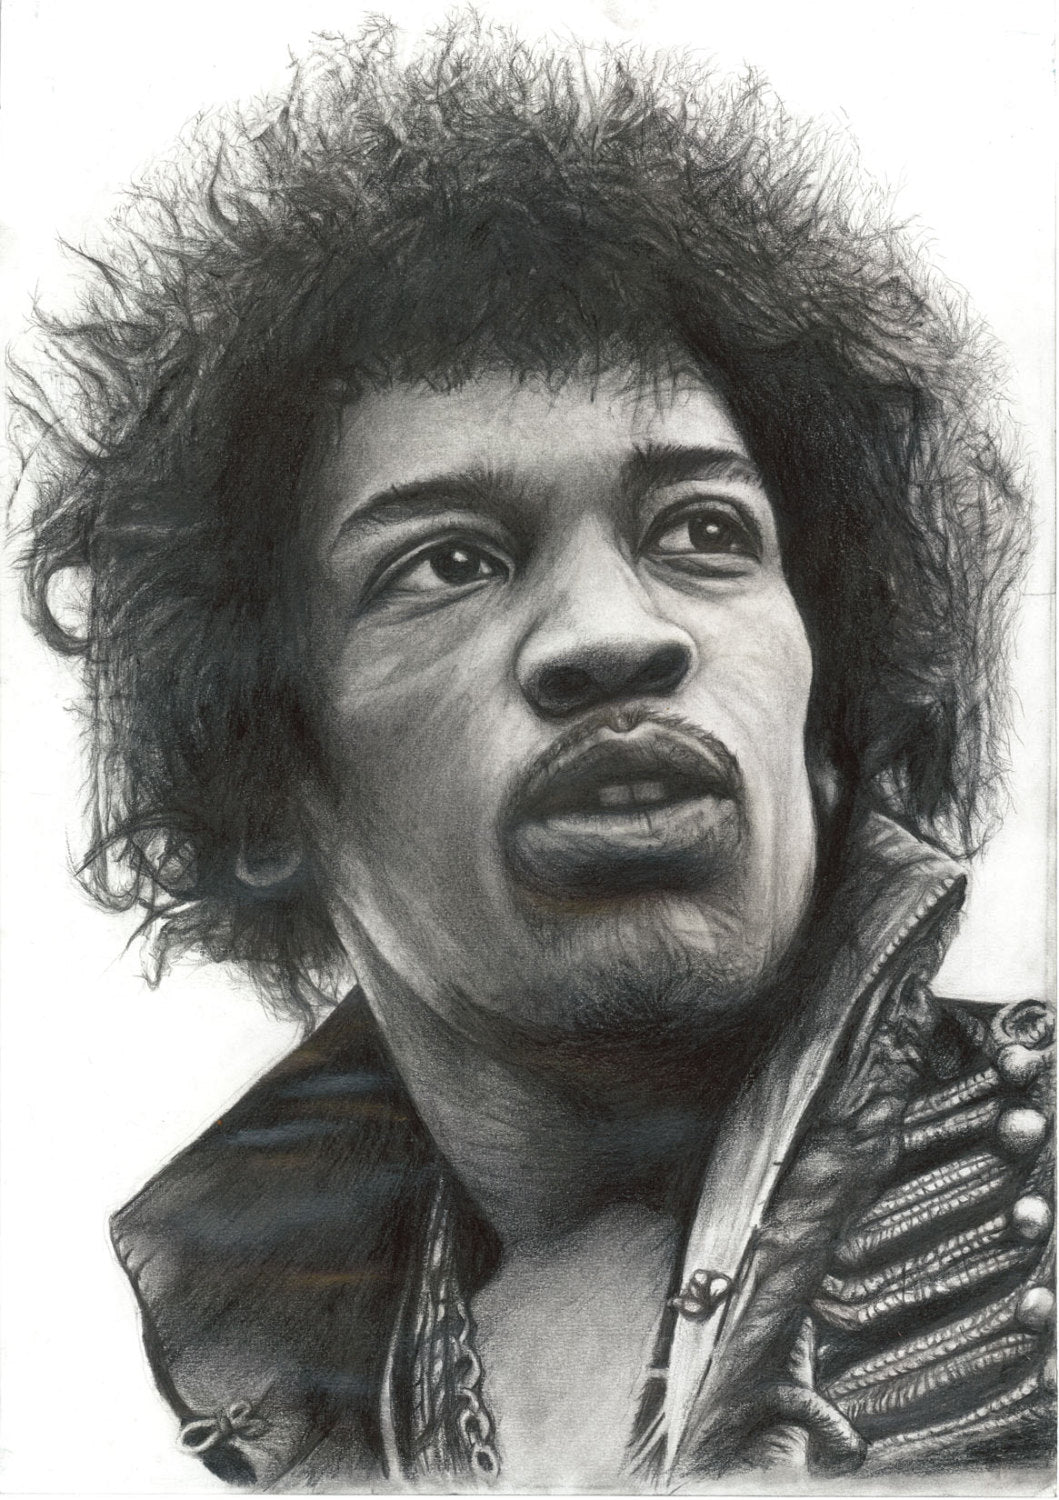 Jimi Hendrix Excuse me while i kiss the sky charcoal portrait pencil drawing black and white print wall decor